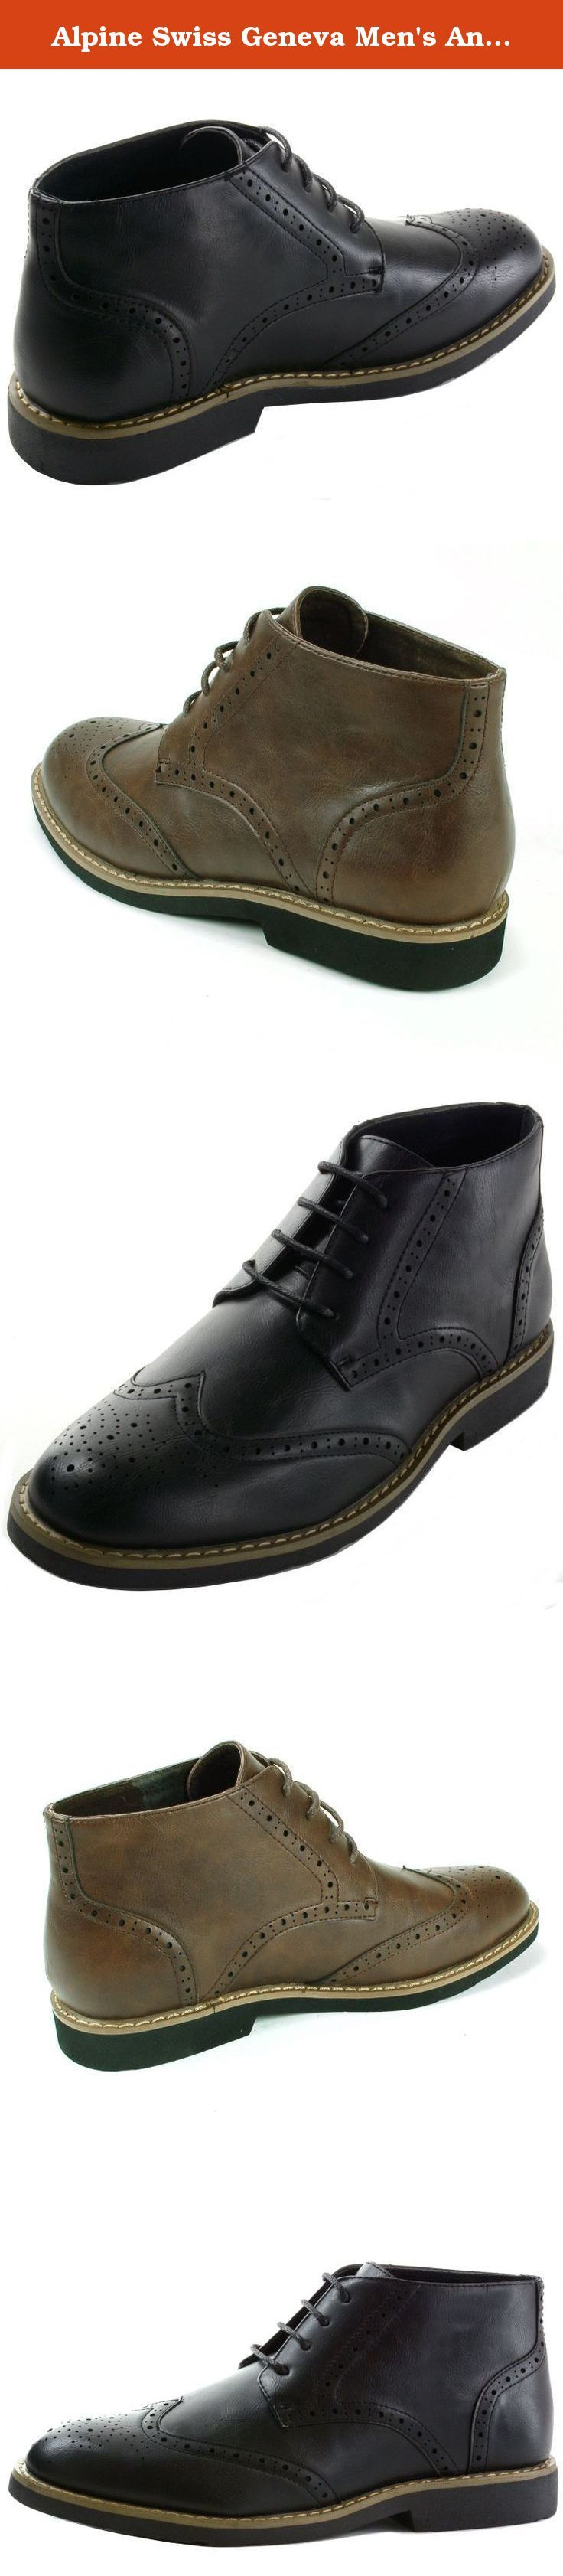 Alpine Swiss Geneva Men's Ankle Boots Lace Up Brogue Medallion Wing Tips. Alpine Swiss Geneva Men's Ankle Boots Lace Up Brogue Medallion Wing Tips.